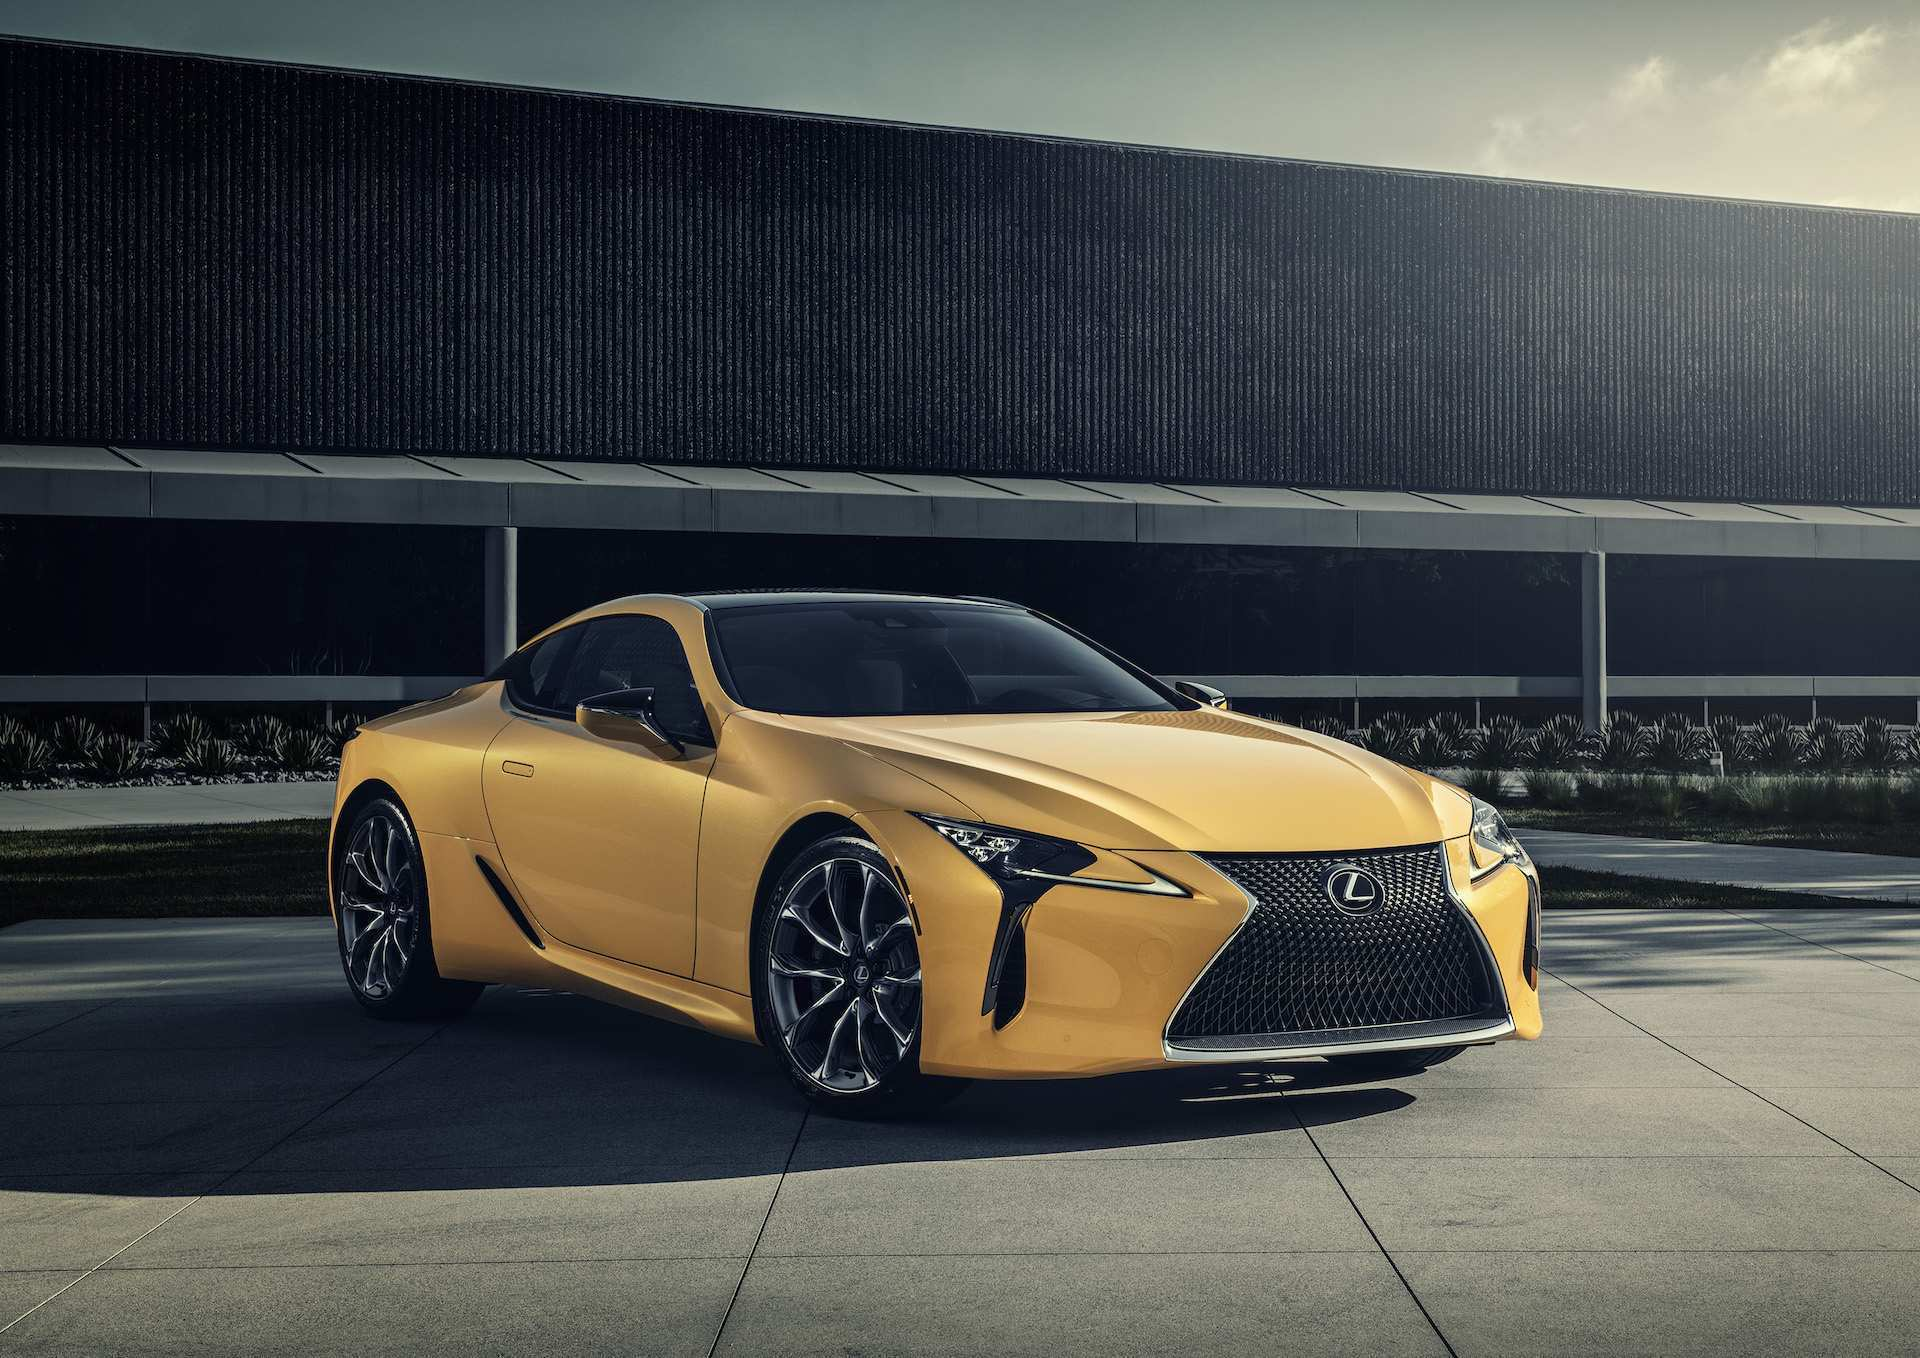 83 New Lc Lexus 2019 Redesign and Concept by Lc Lexus 2019